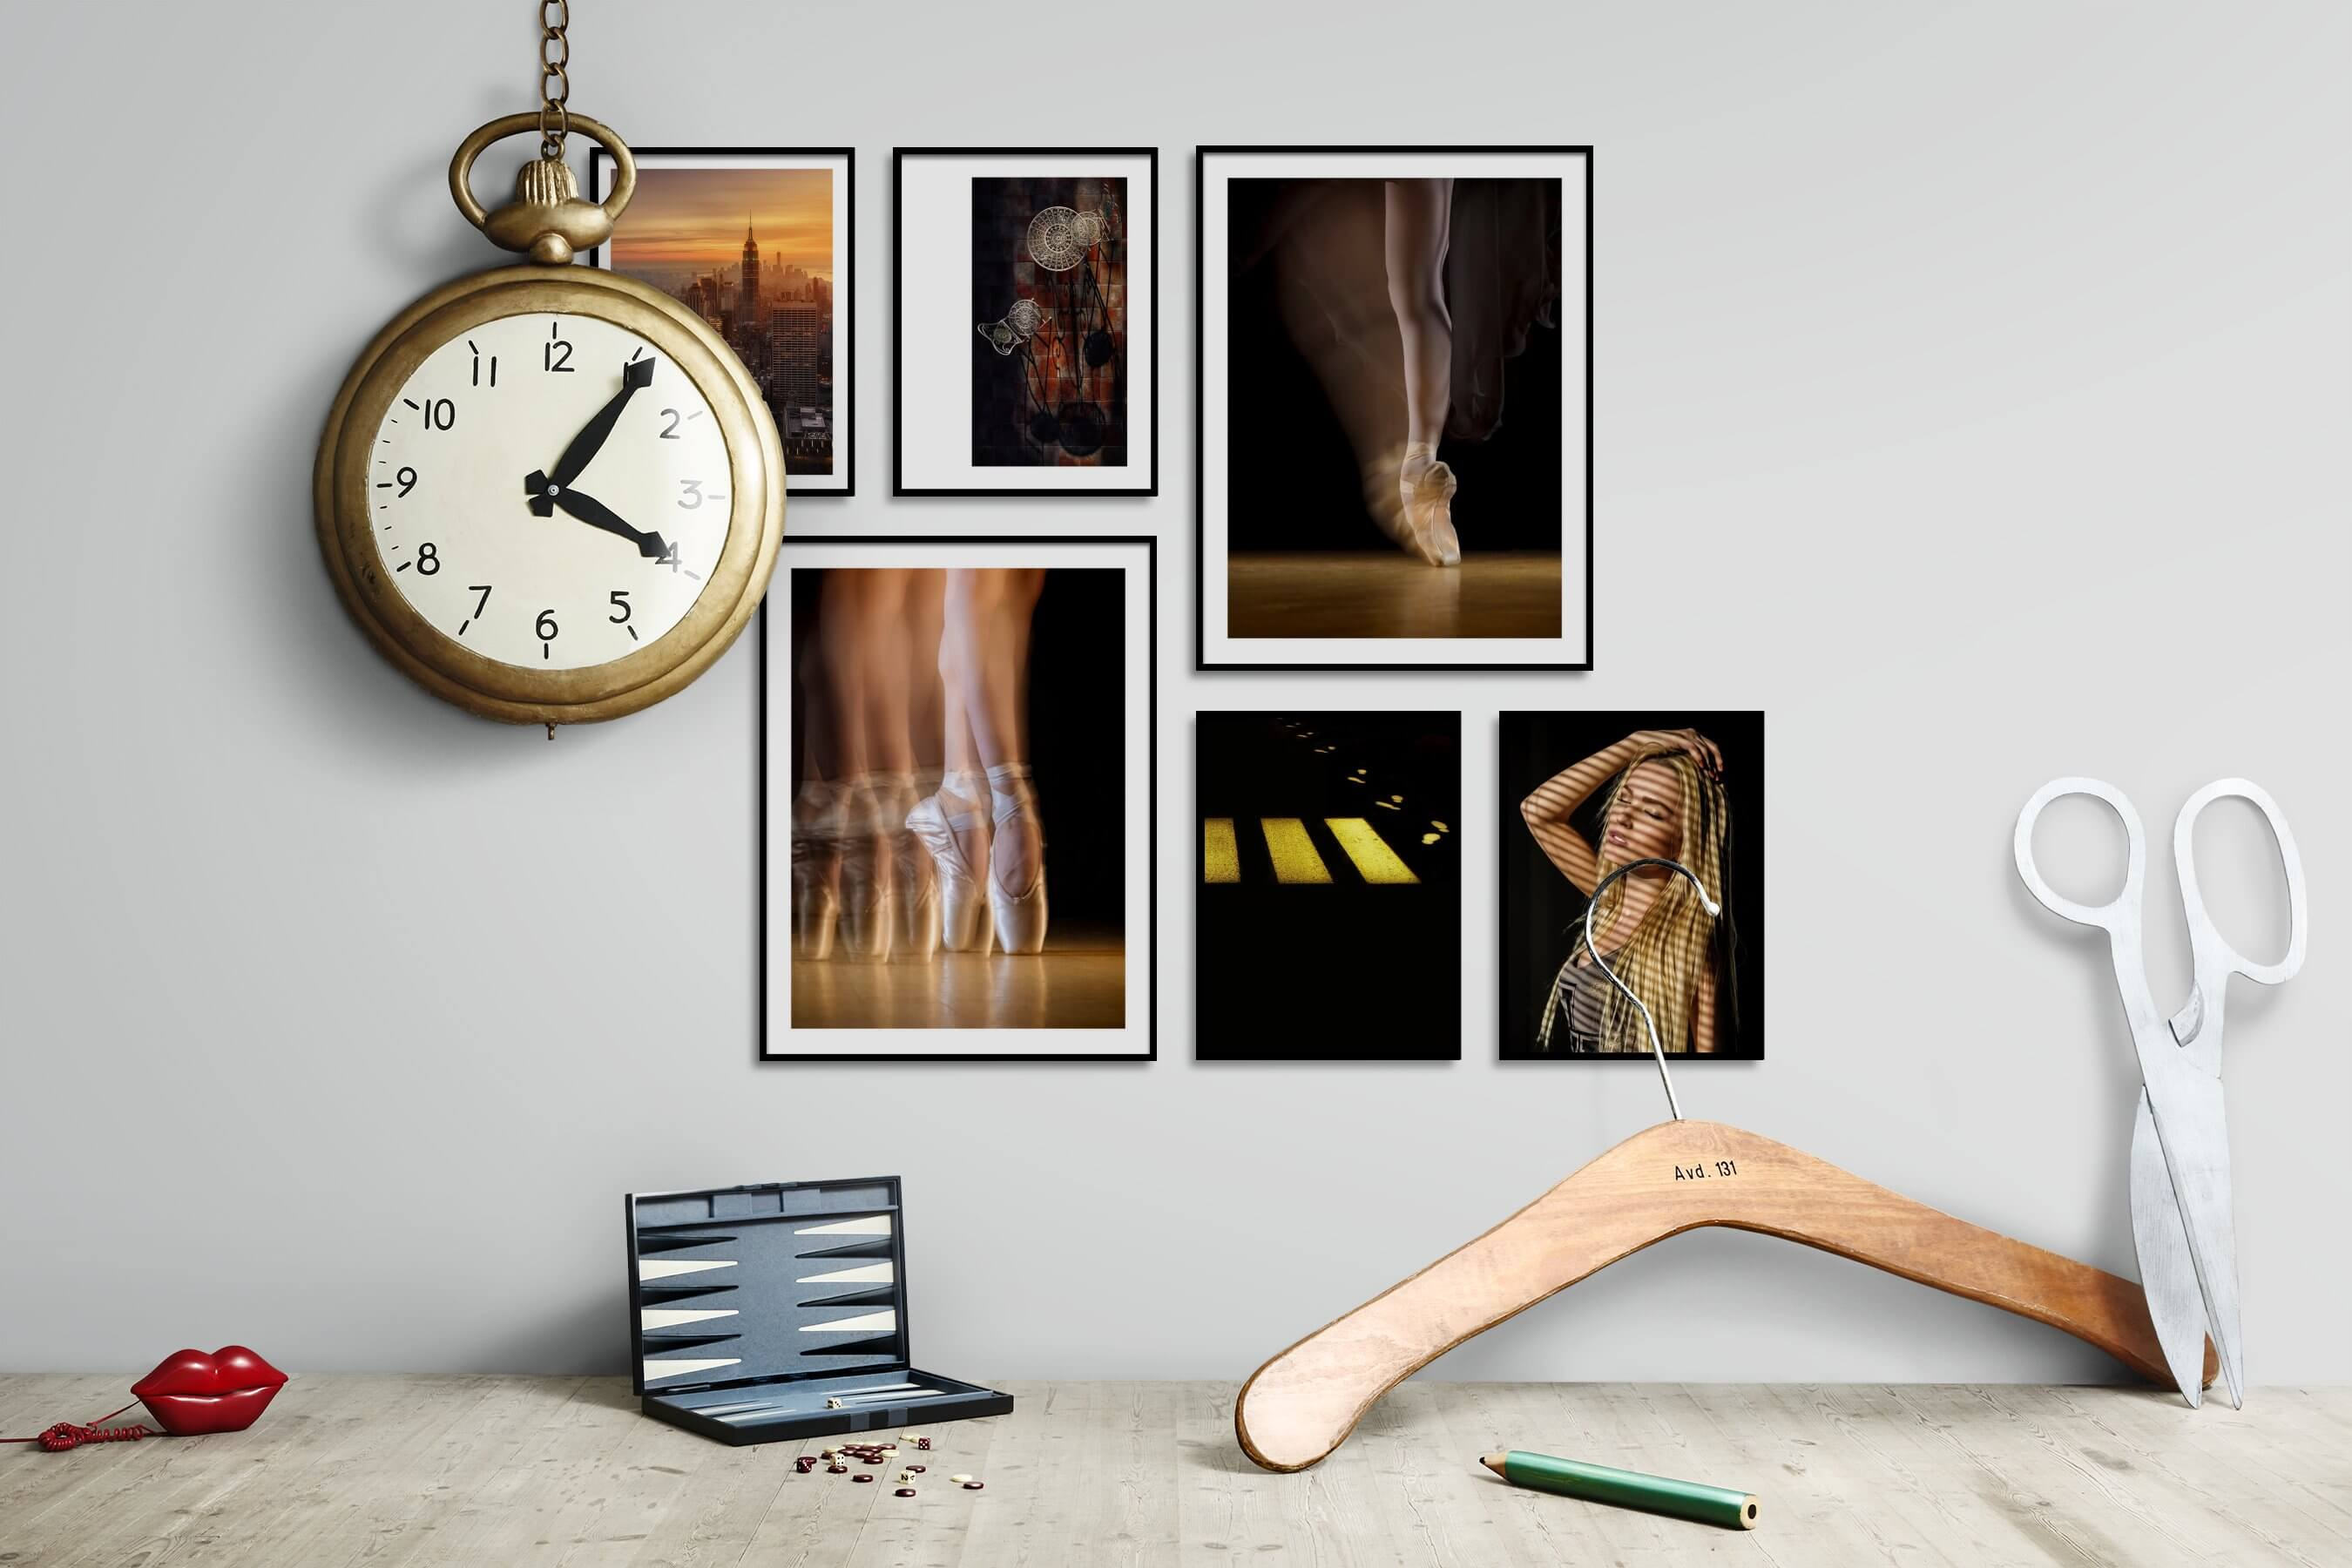 Gallery wall idea with six framed pictures arranged on a wall depicting City Life, Americana, For the Moderate, Fashion & Beauty, Dark Tones, and For the Minimalist